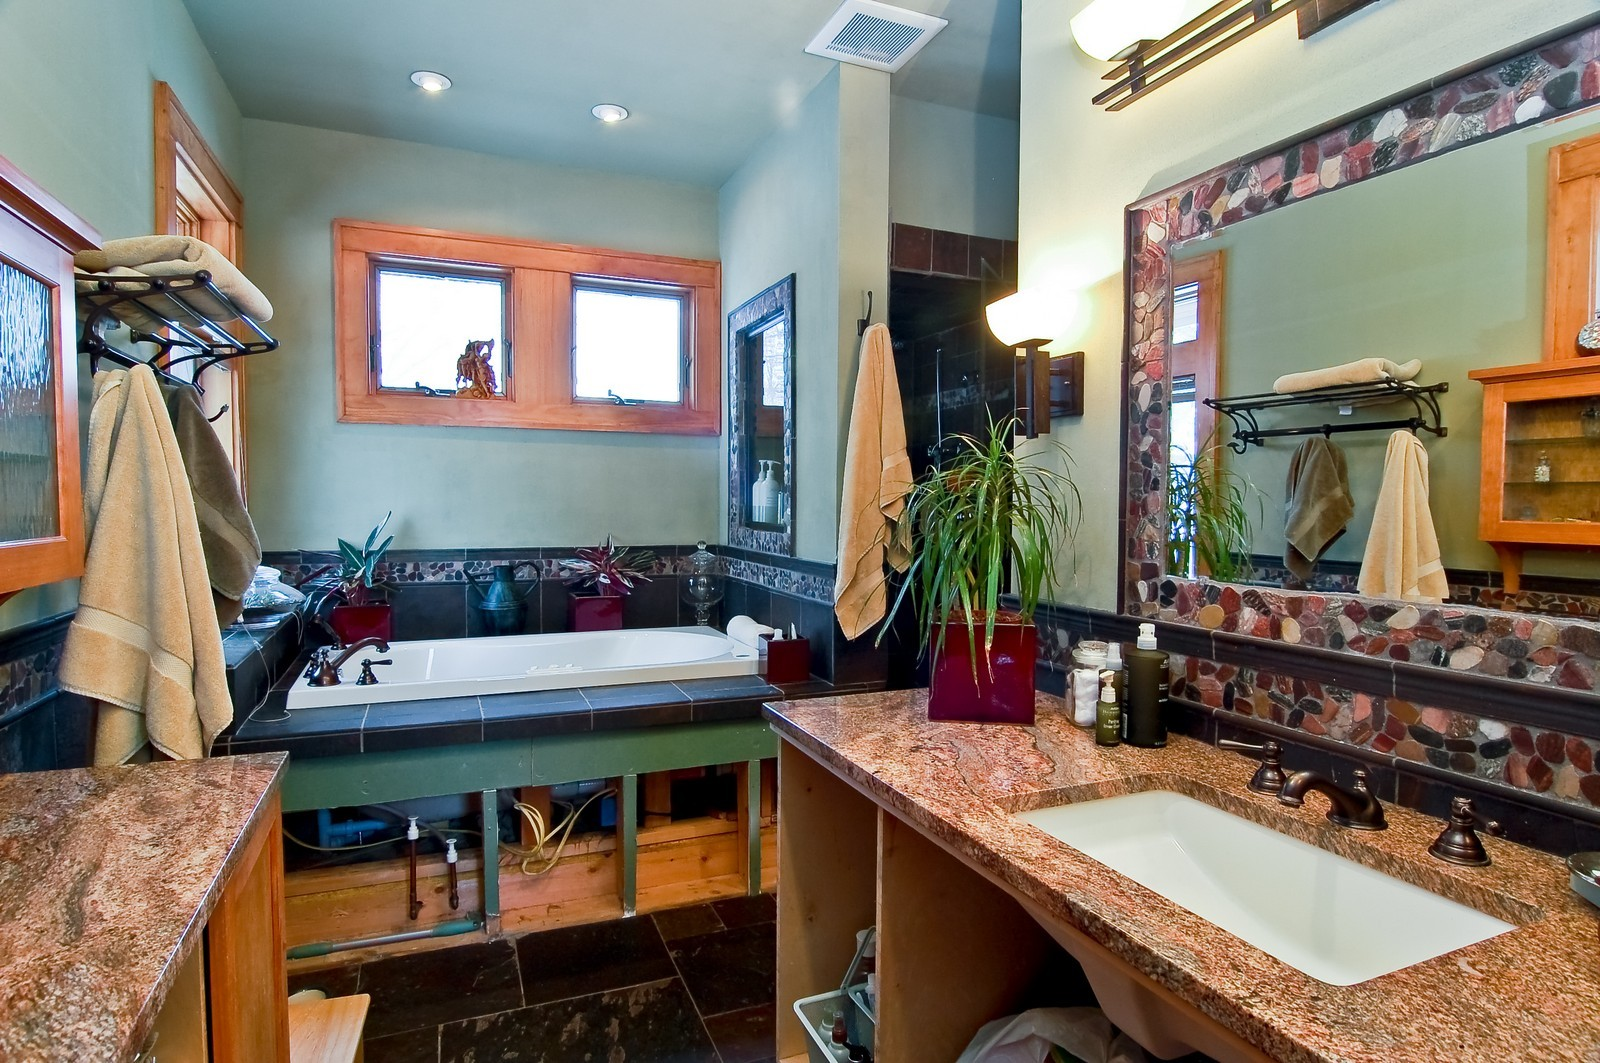 Real Estate Photography - 5012 Upton Avenue South, Minneapolis, MN, 55410 - Master Bathroom